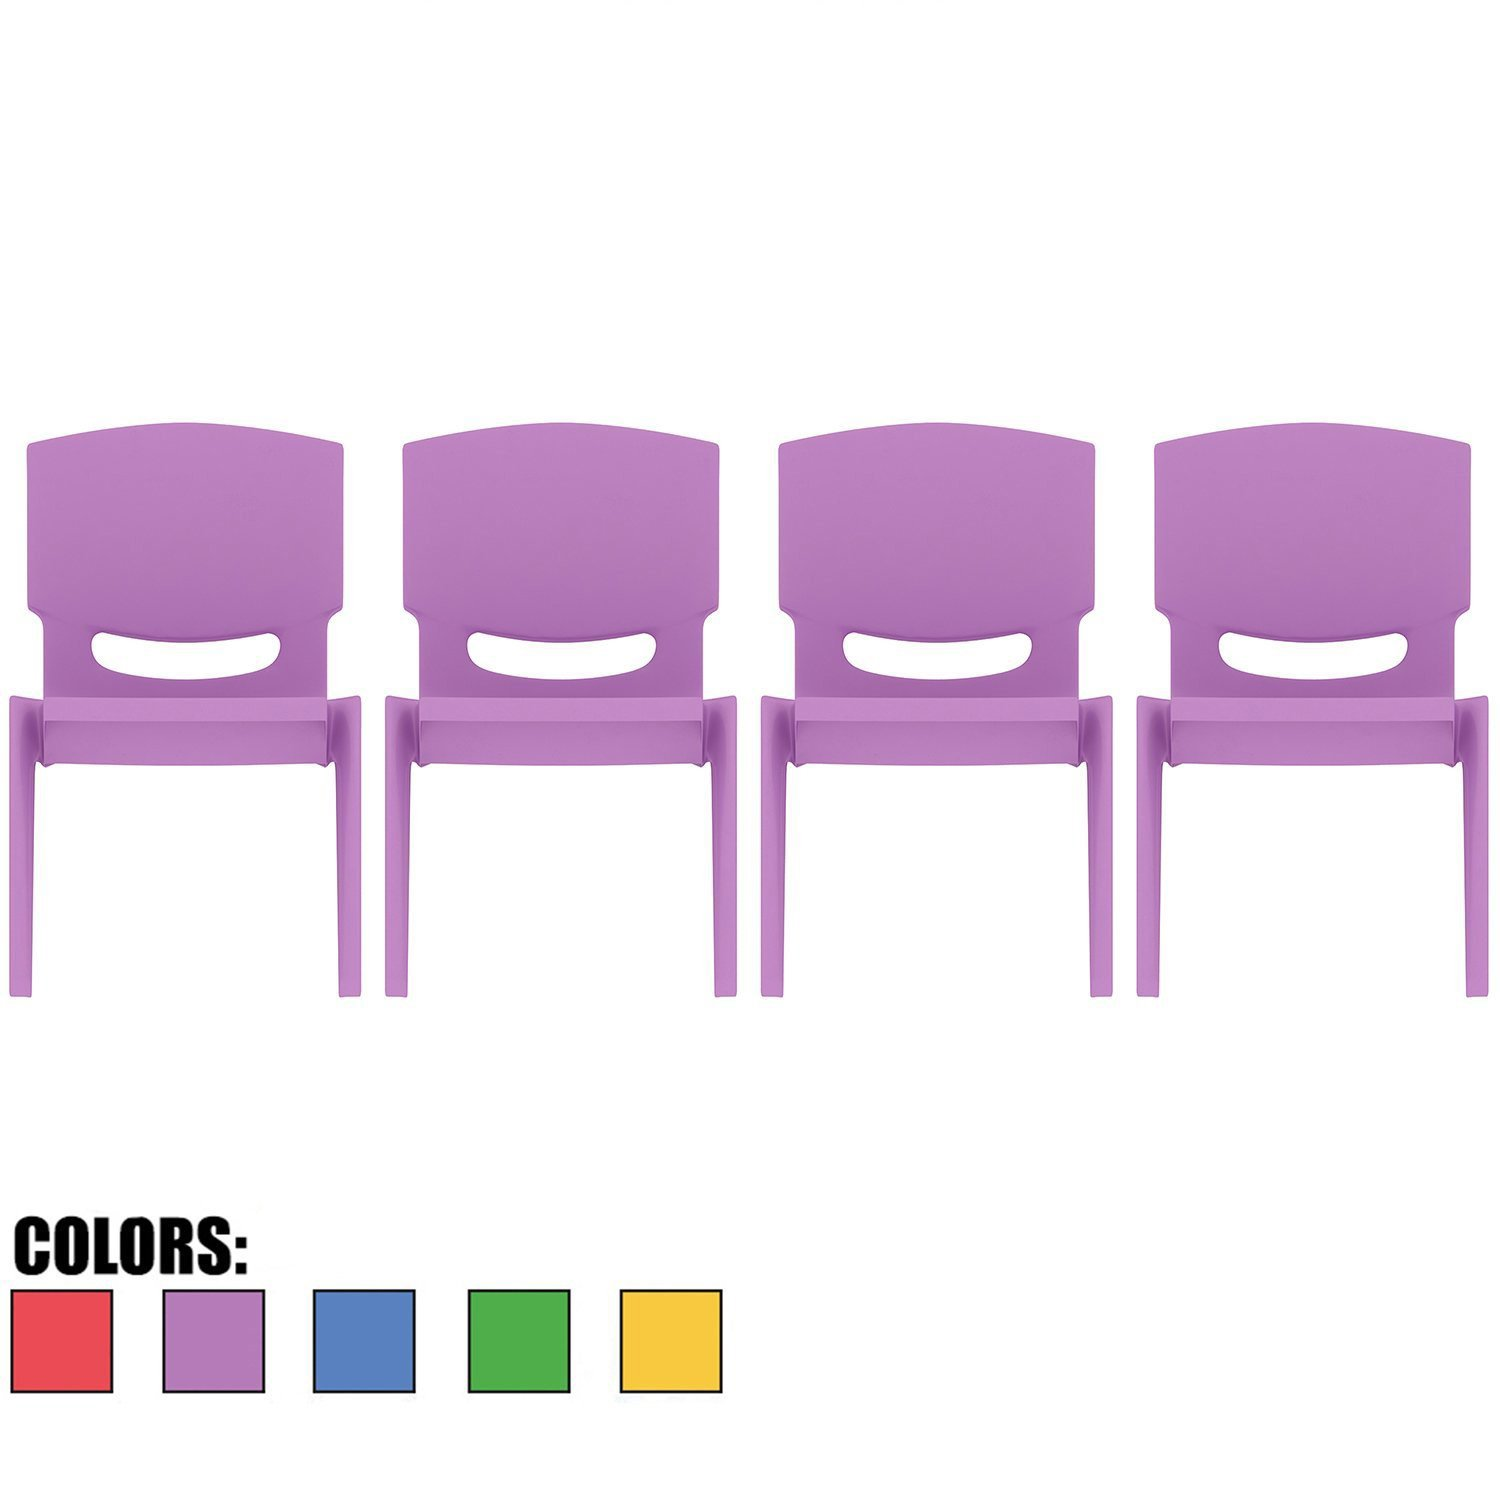 2xhome - Set of Four (4) - Purple - Kids Size Plastic Side Chair 10'' Seat Height Purple Childs Chair Childrens Room School Chairs No Arm Arms Armless Molded Plastic Seat Stackable